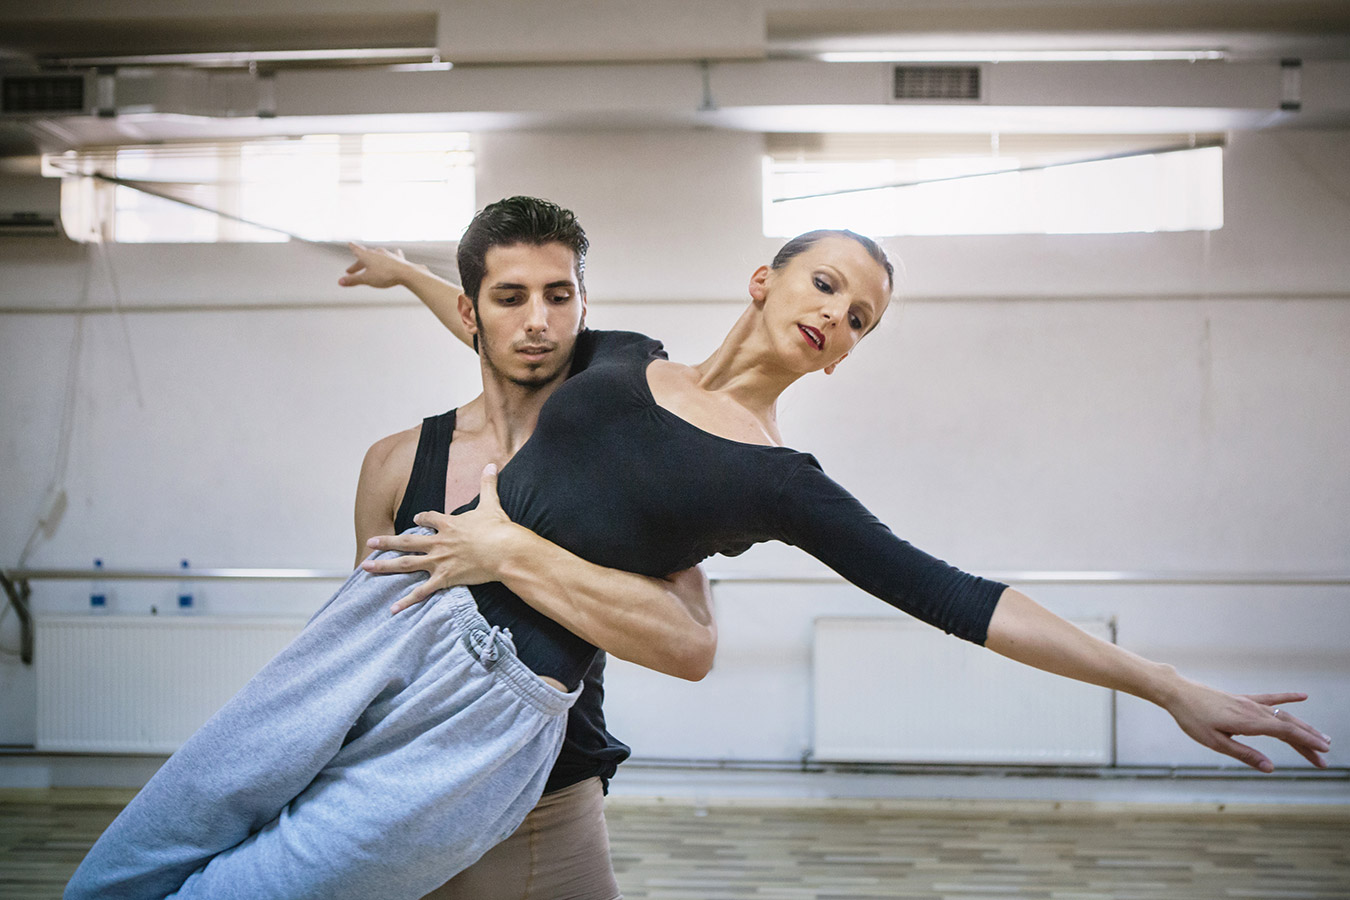 Fisnik Smani and Behie Murtezi during a rehearsal for the upcoming show. Both of them work full time for the ballet.